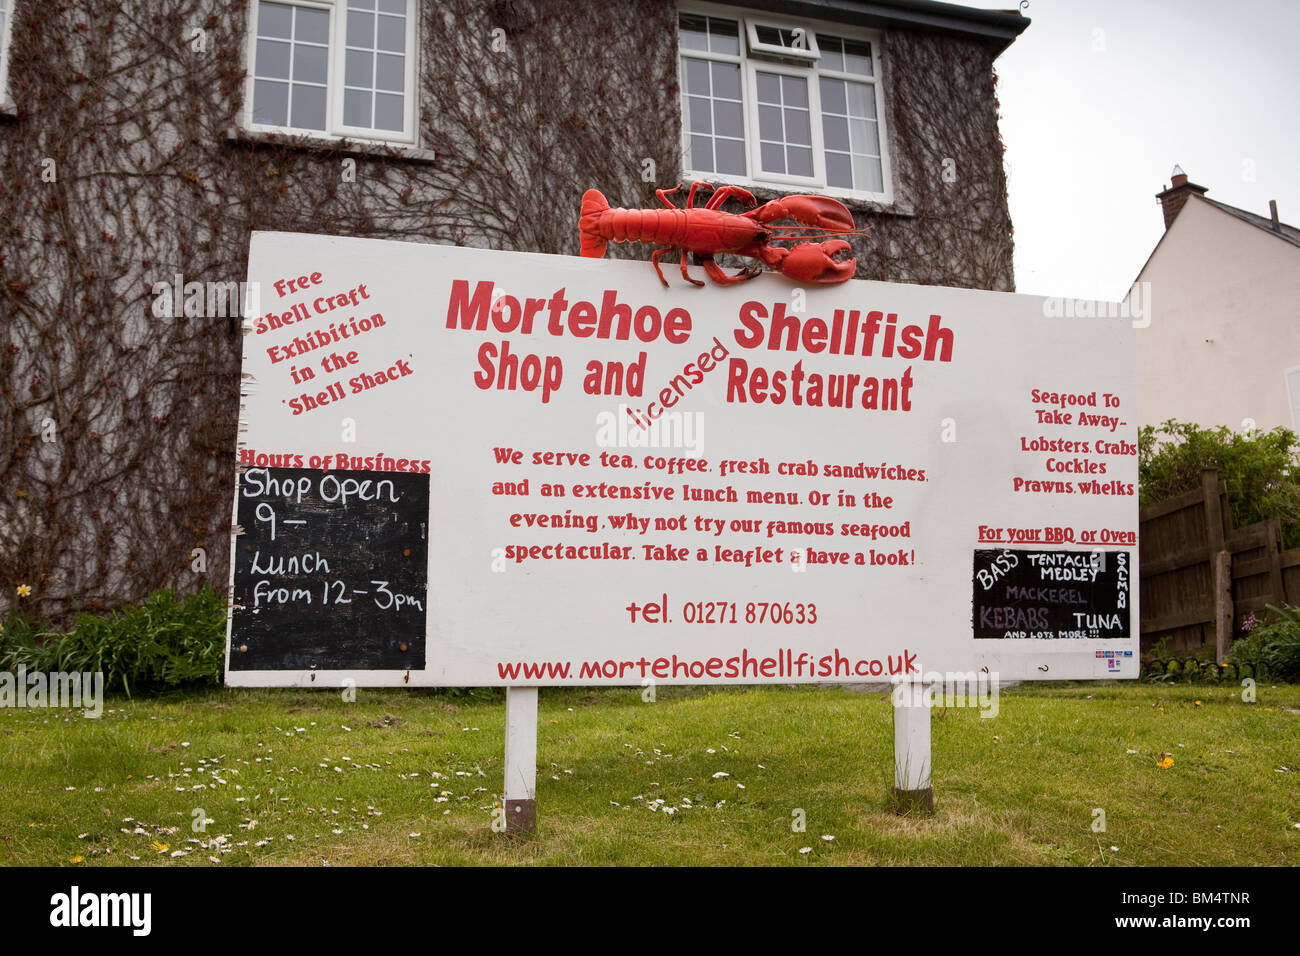 UK, England, Devon, Woolacombe, Mortehoe, shellfish shop and restaurant in former council house - Stock Image